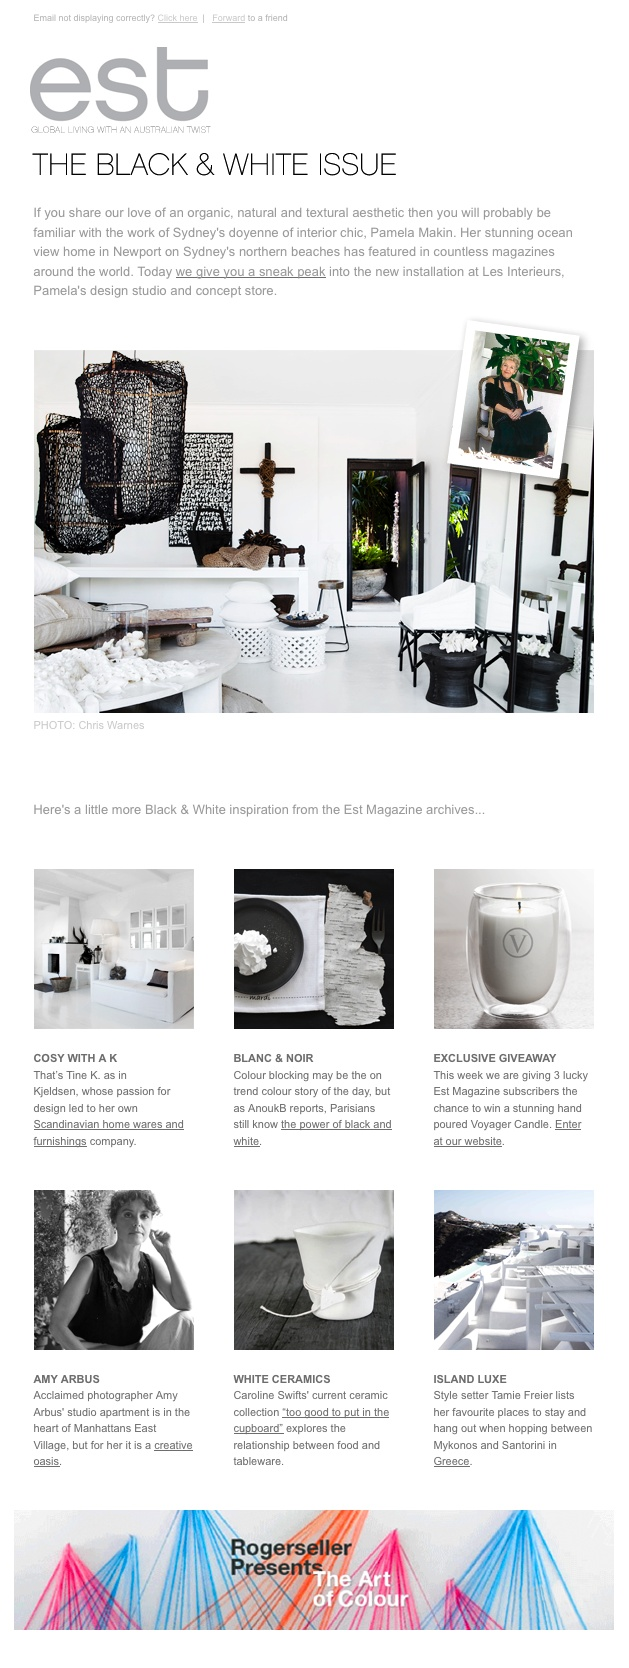 20 best Newsletters/E-Notes images on Pinterest | Email newsletter ...